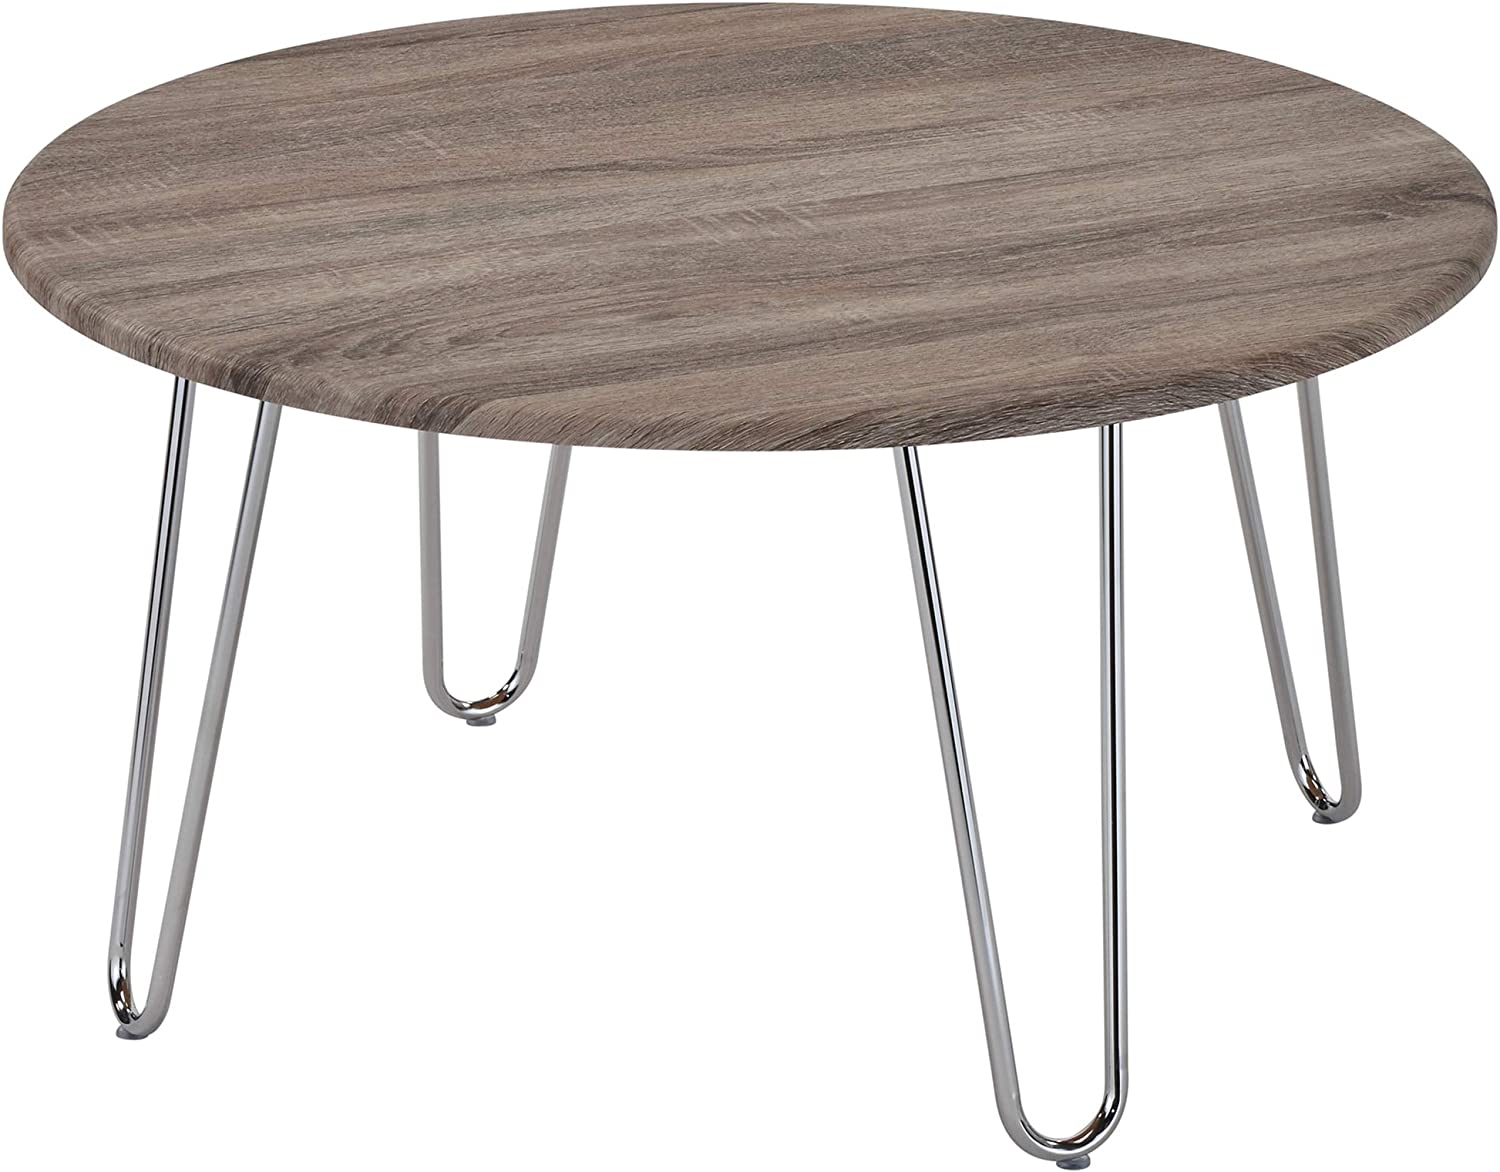 Tario, Modern Metal Chrome Leg Coffee Cocktail Table (31'' Round)